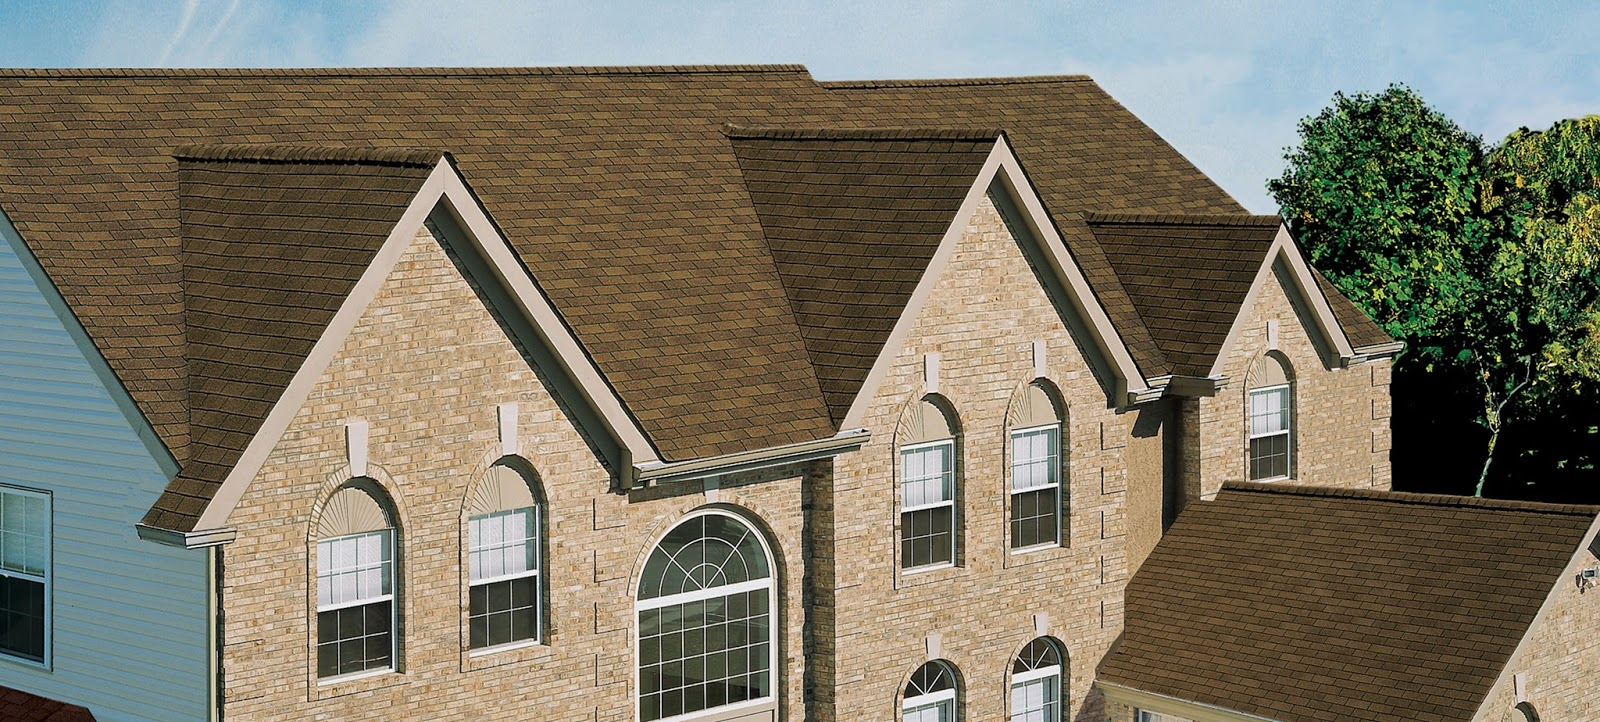 Gaf Roofing Jp Construction Services Offered In Maryland A Brief Overview Of